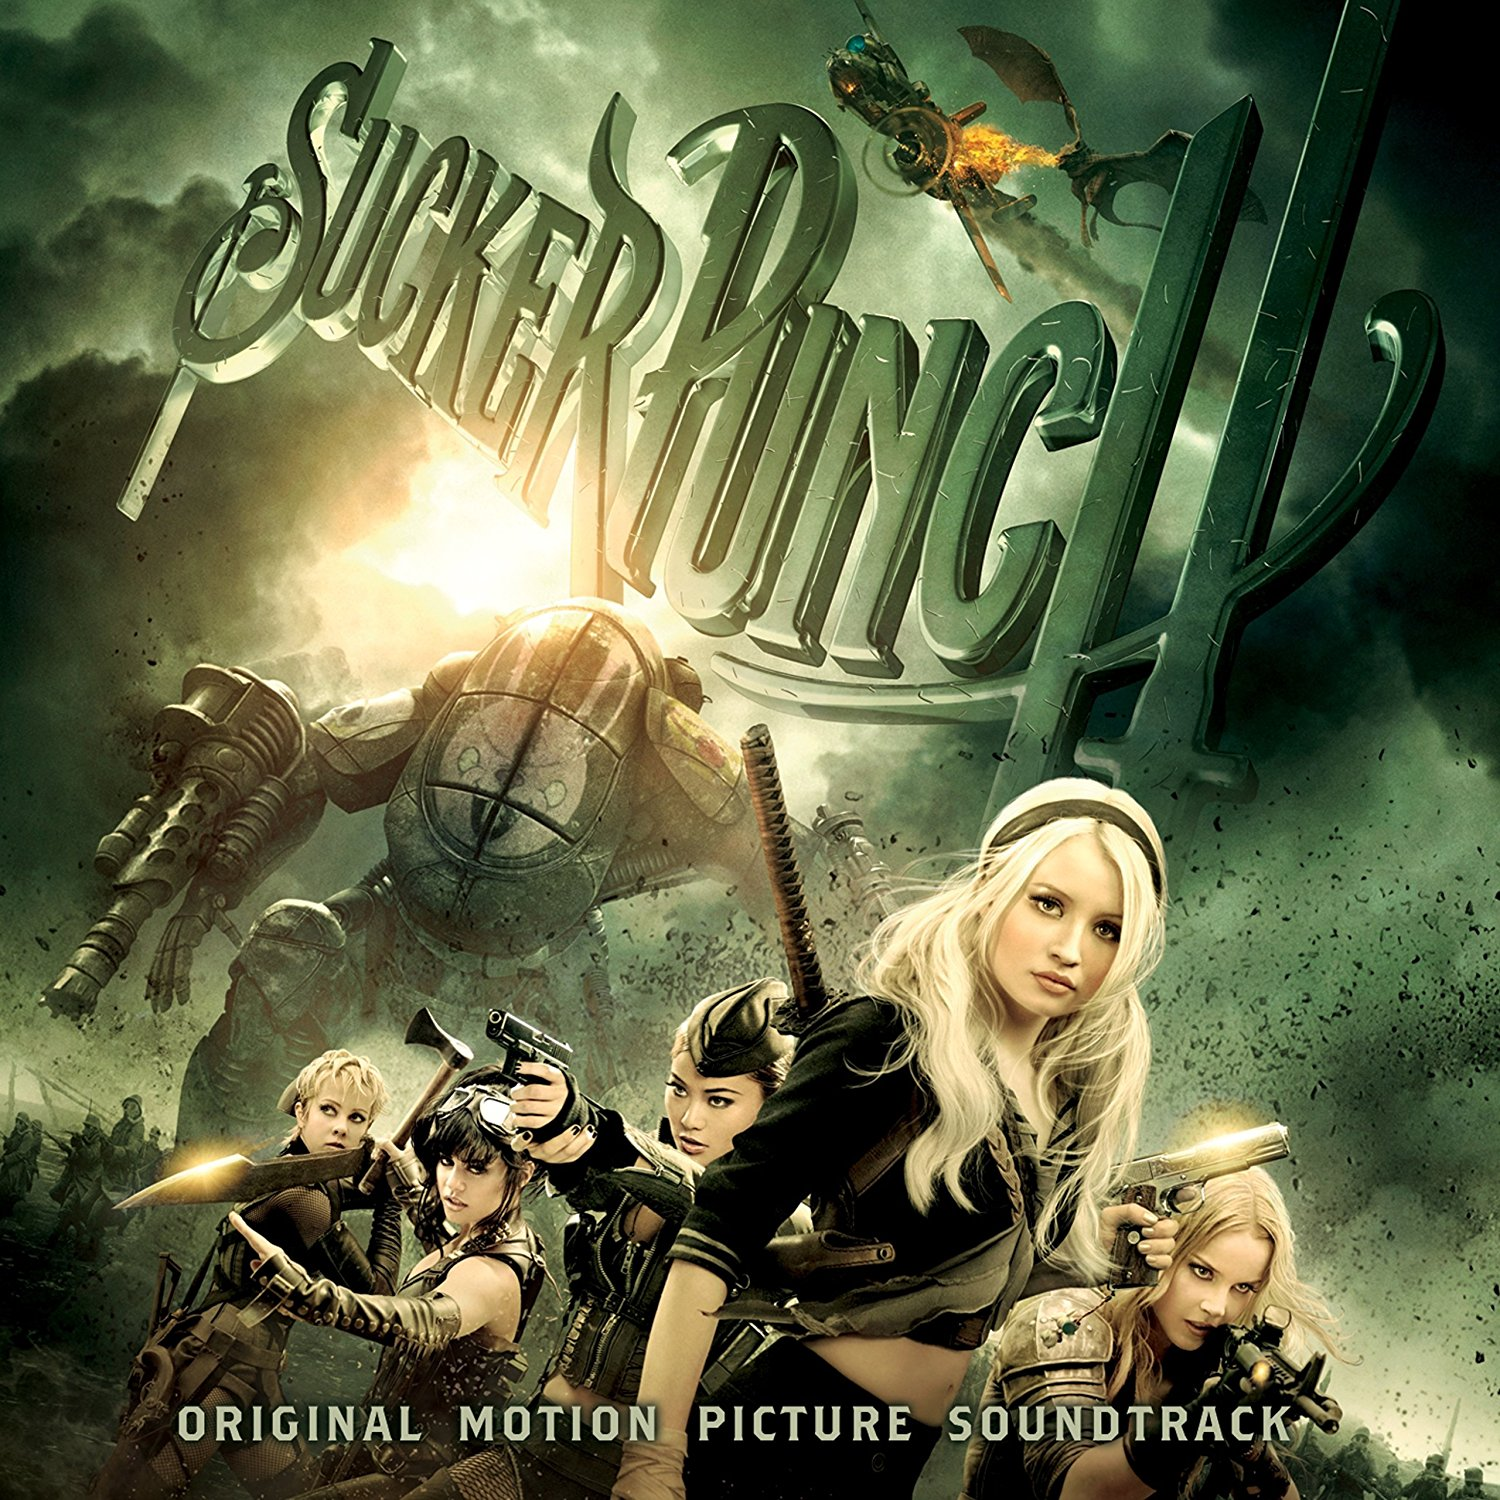 [10's] Emily Browning - Sweet Dreams (2011) OST%20-%20Sucker%20Punch